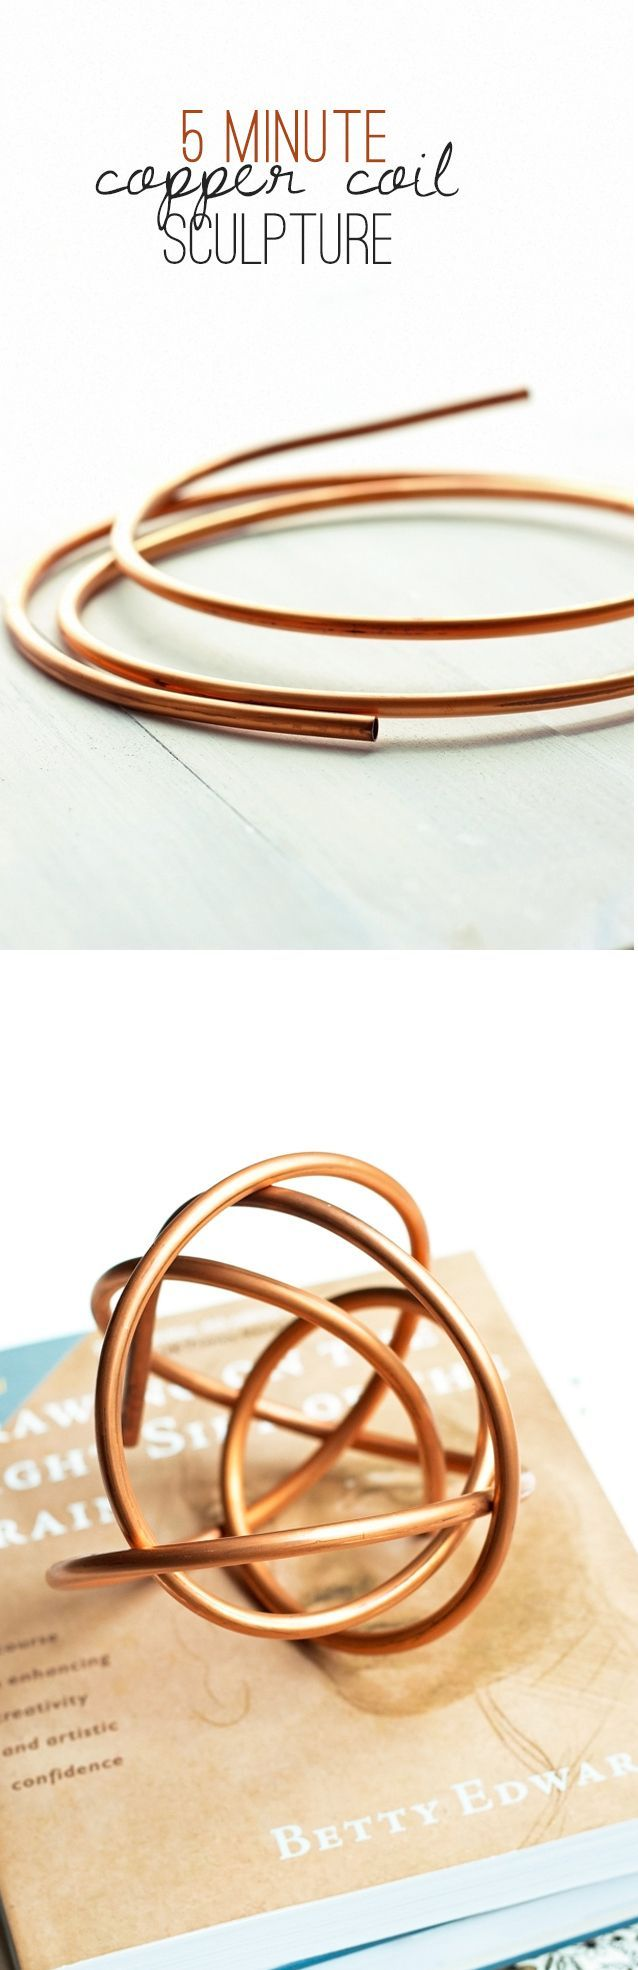 Copper Tubing Art 50 best copper art images on pinterest | copper art, copper tubing